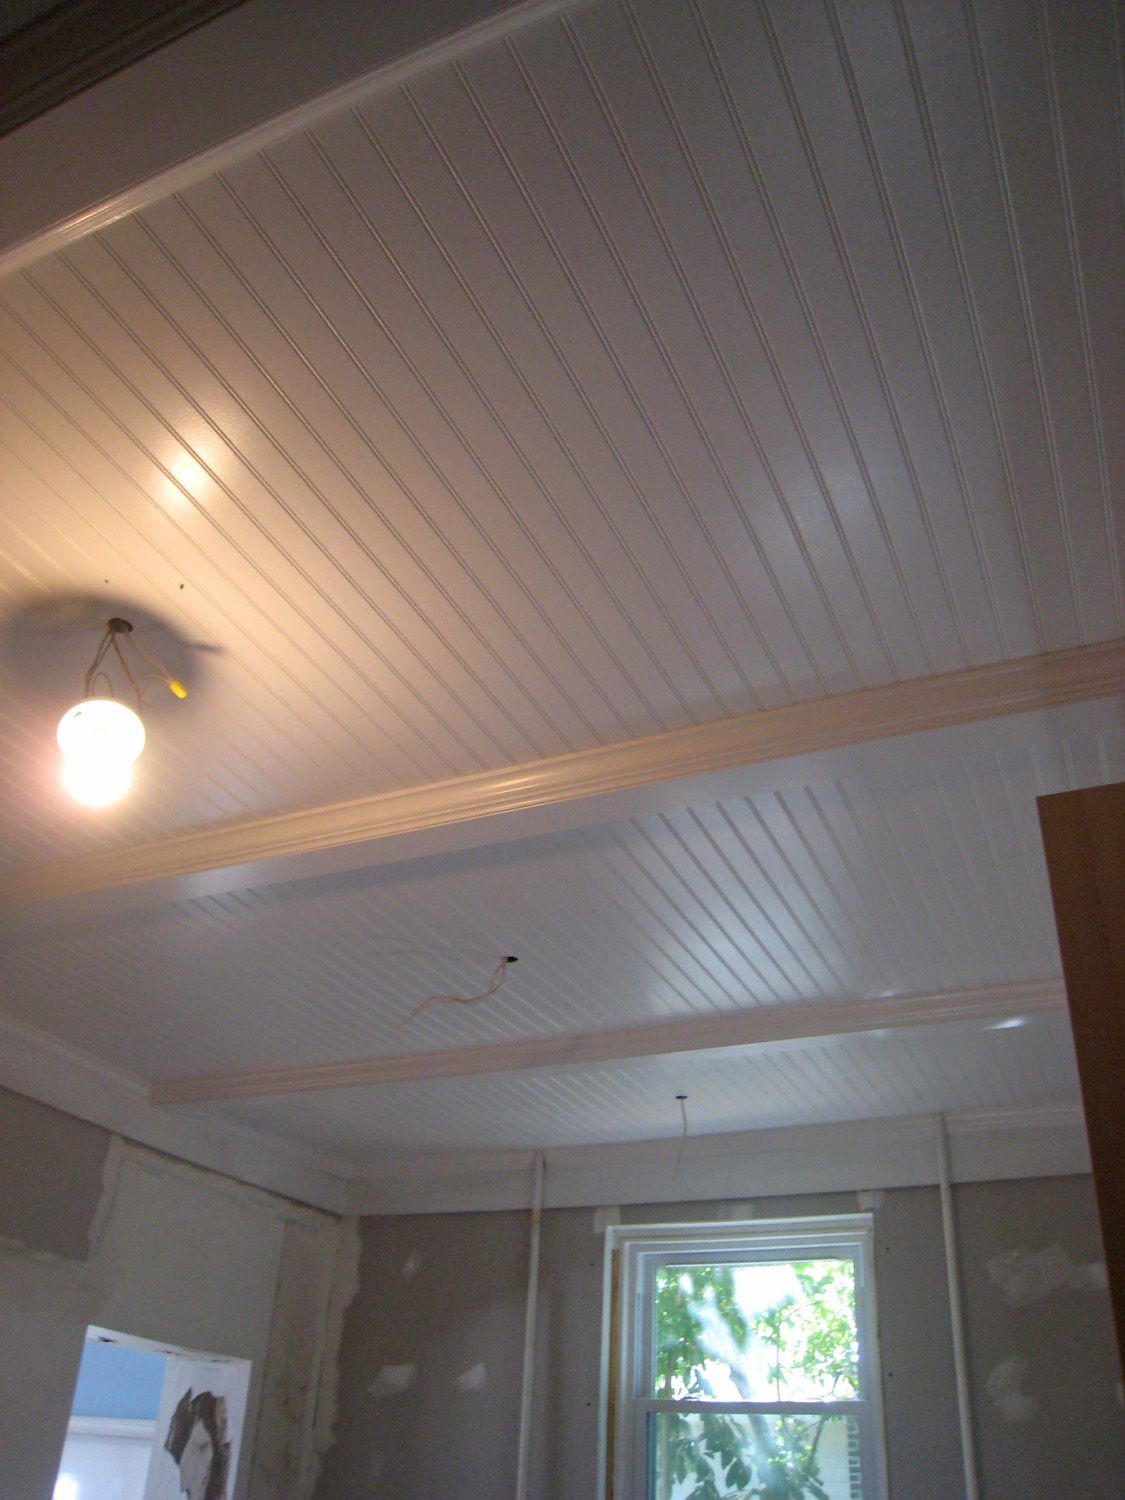 Basement Ceiling Idea Remove Drop Ceiling Paint Beams White And Put Up Bead